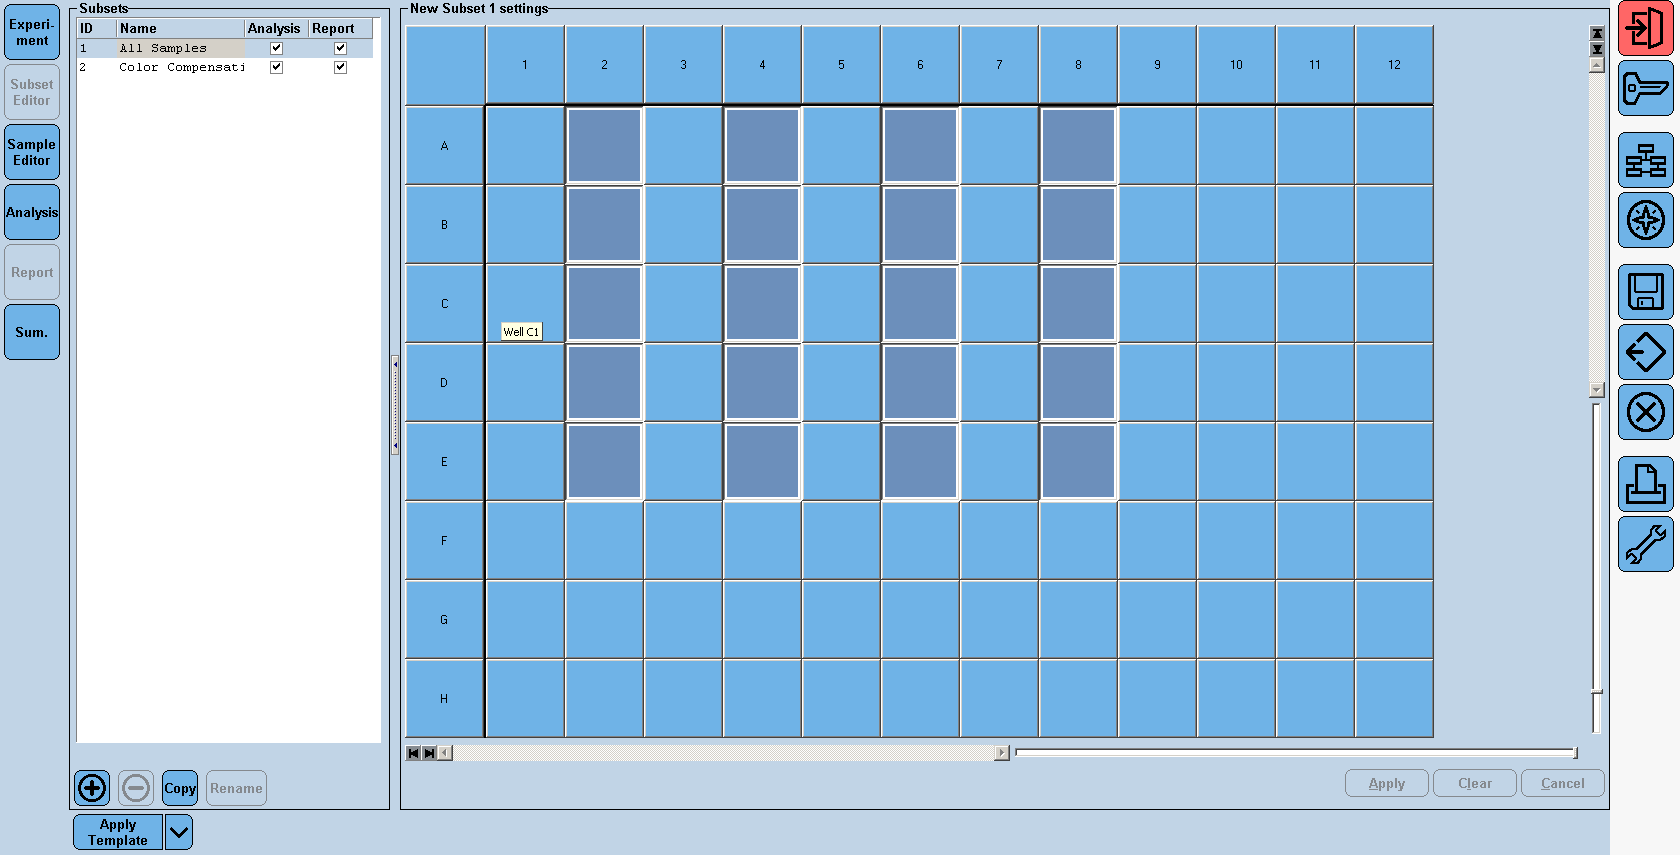 #12 #12 #12 13. In the Subset Editor on the left hand column, choose a new subset by pressing the + tab in the lower left corner. Name the subset Color Compensation and mark 4 rows with each 5 wells.